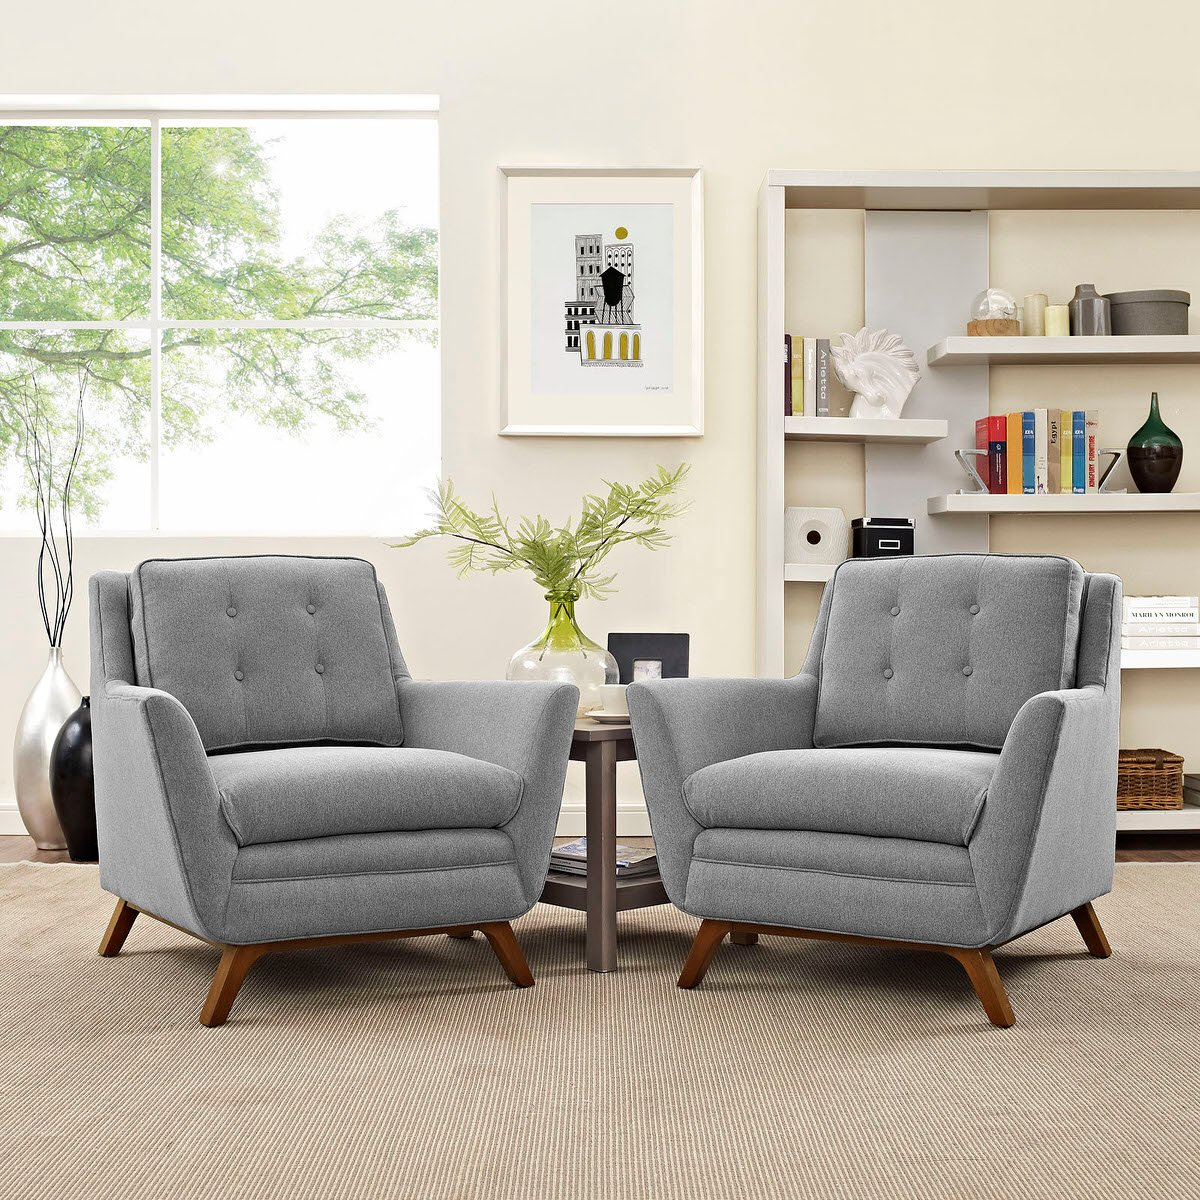 Beguile 2 Piece Upholstered Fabric Living Room Set Expectation Gray ...